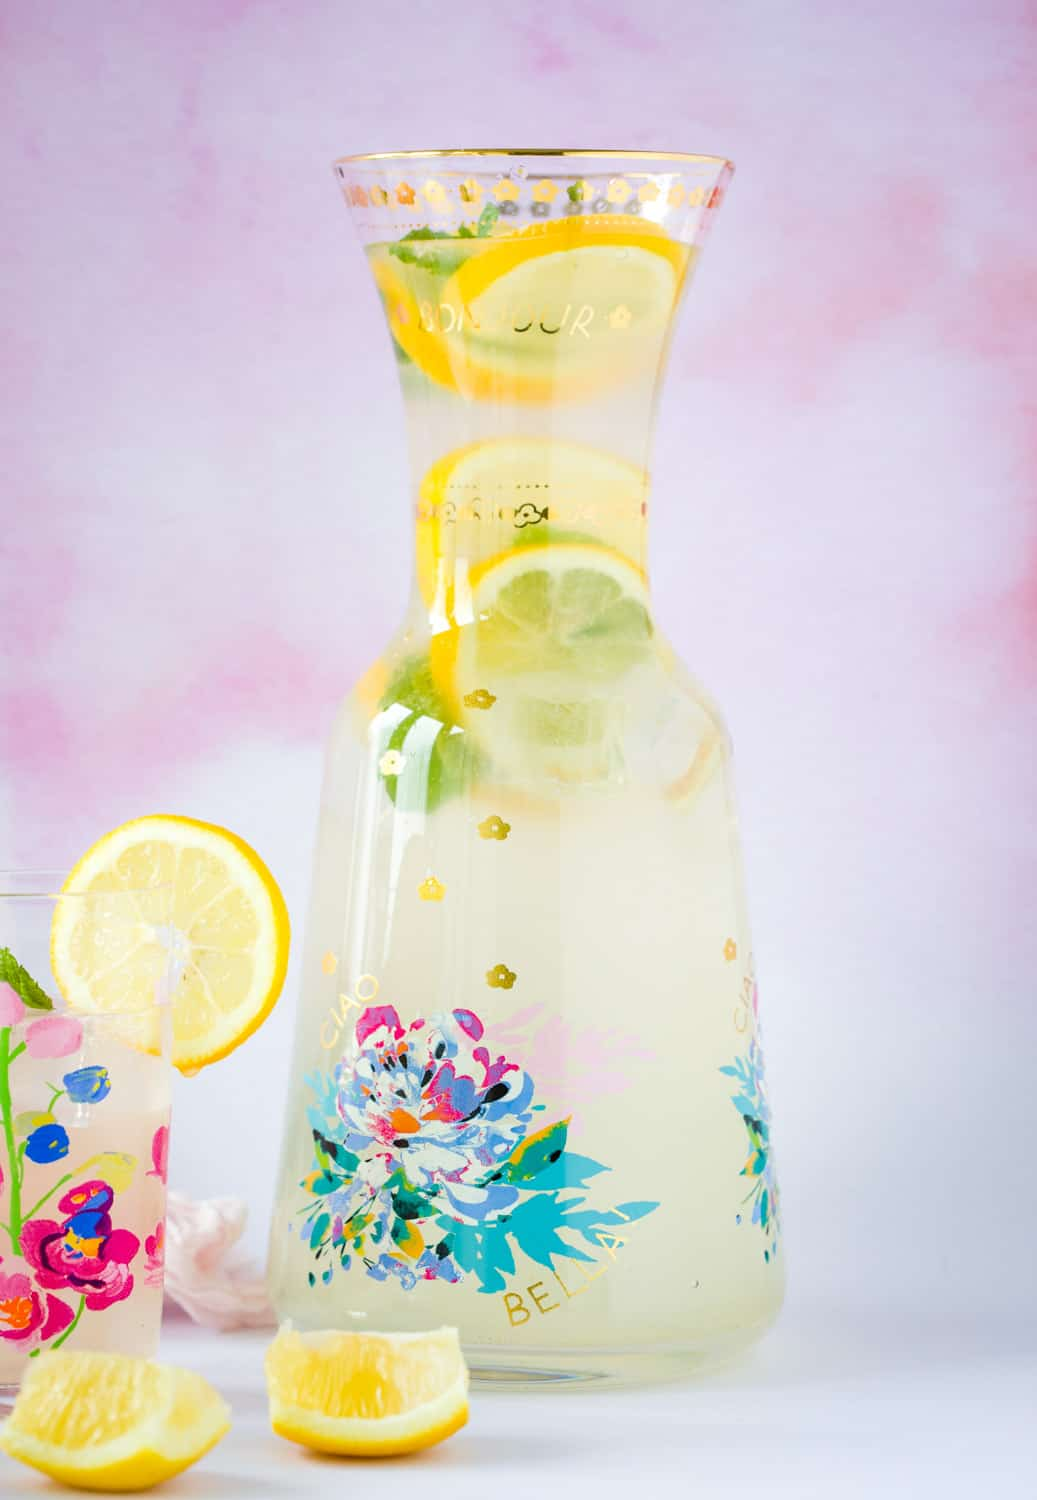 A pitcher of lemon cordial with slices of lemon and sprigs of mint